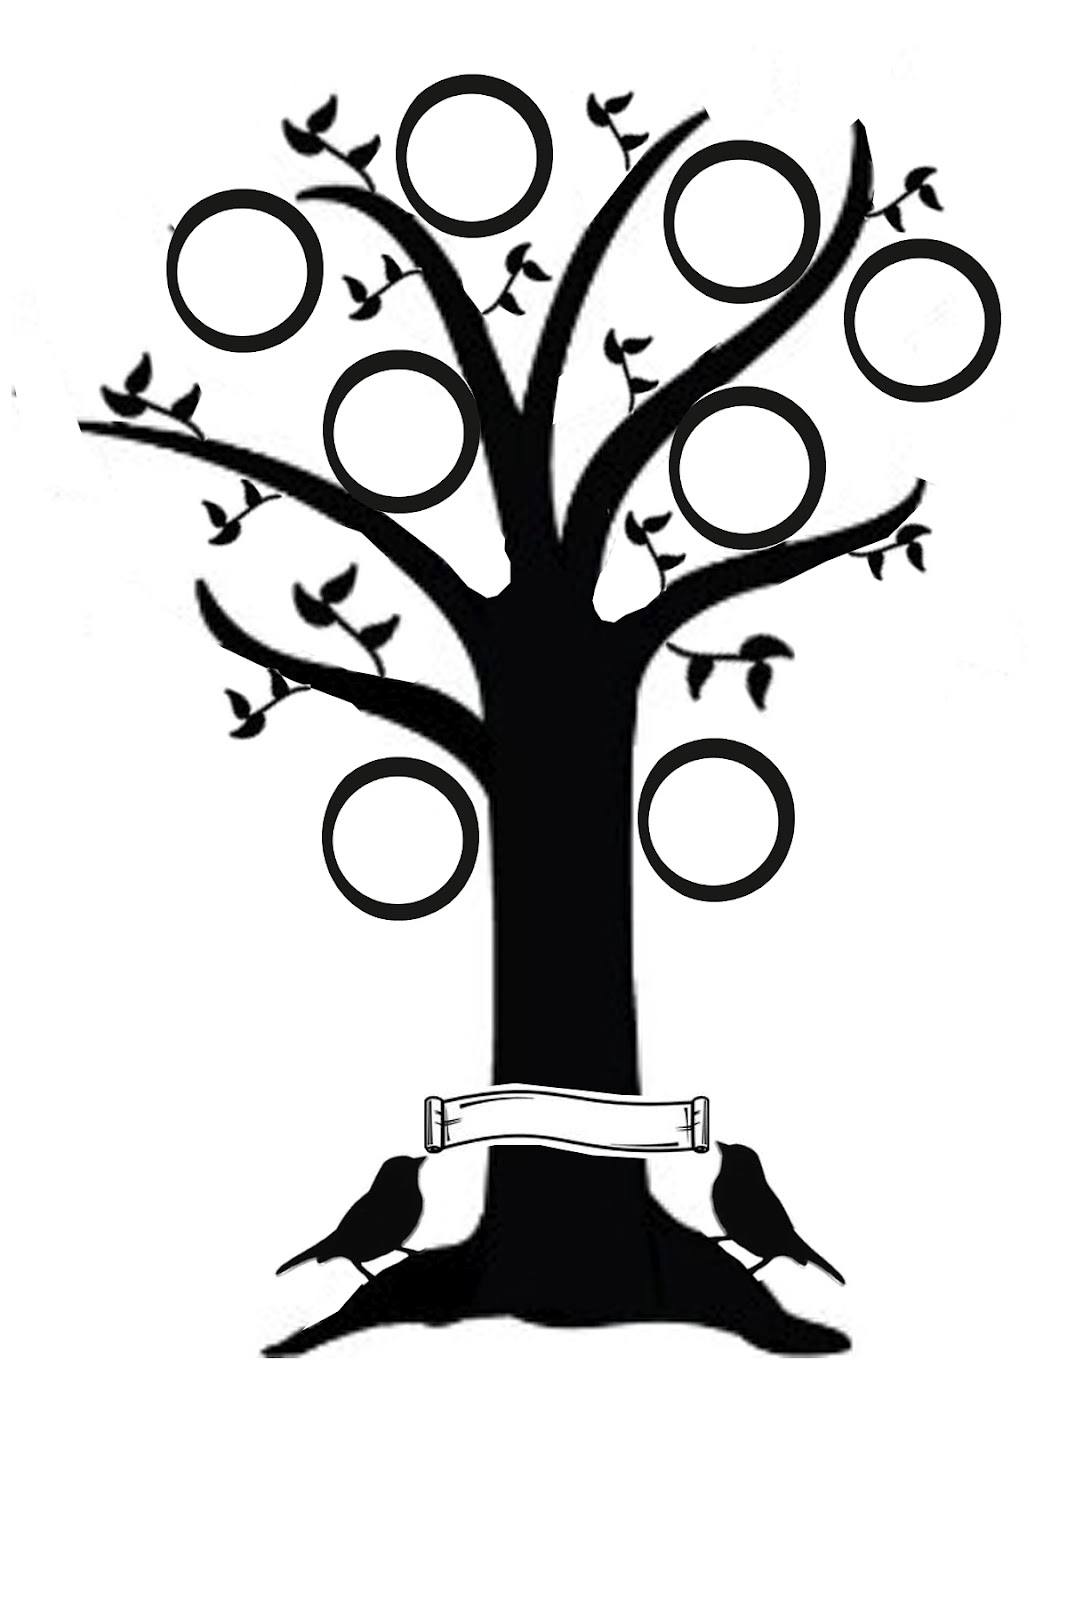 Family tree clipart in black and white jpg transparent download Best Family Tree Clipart #24219 - Clipartion.com jpg transparent download